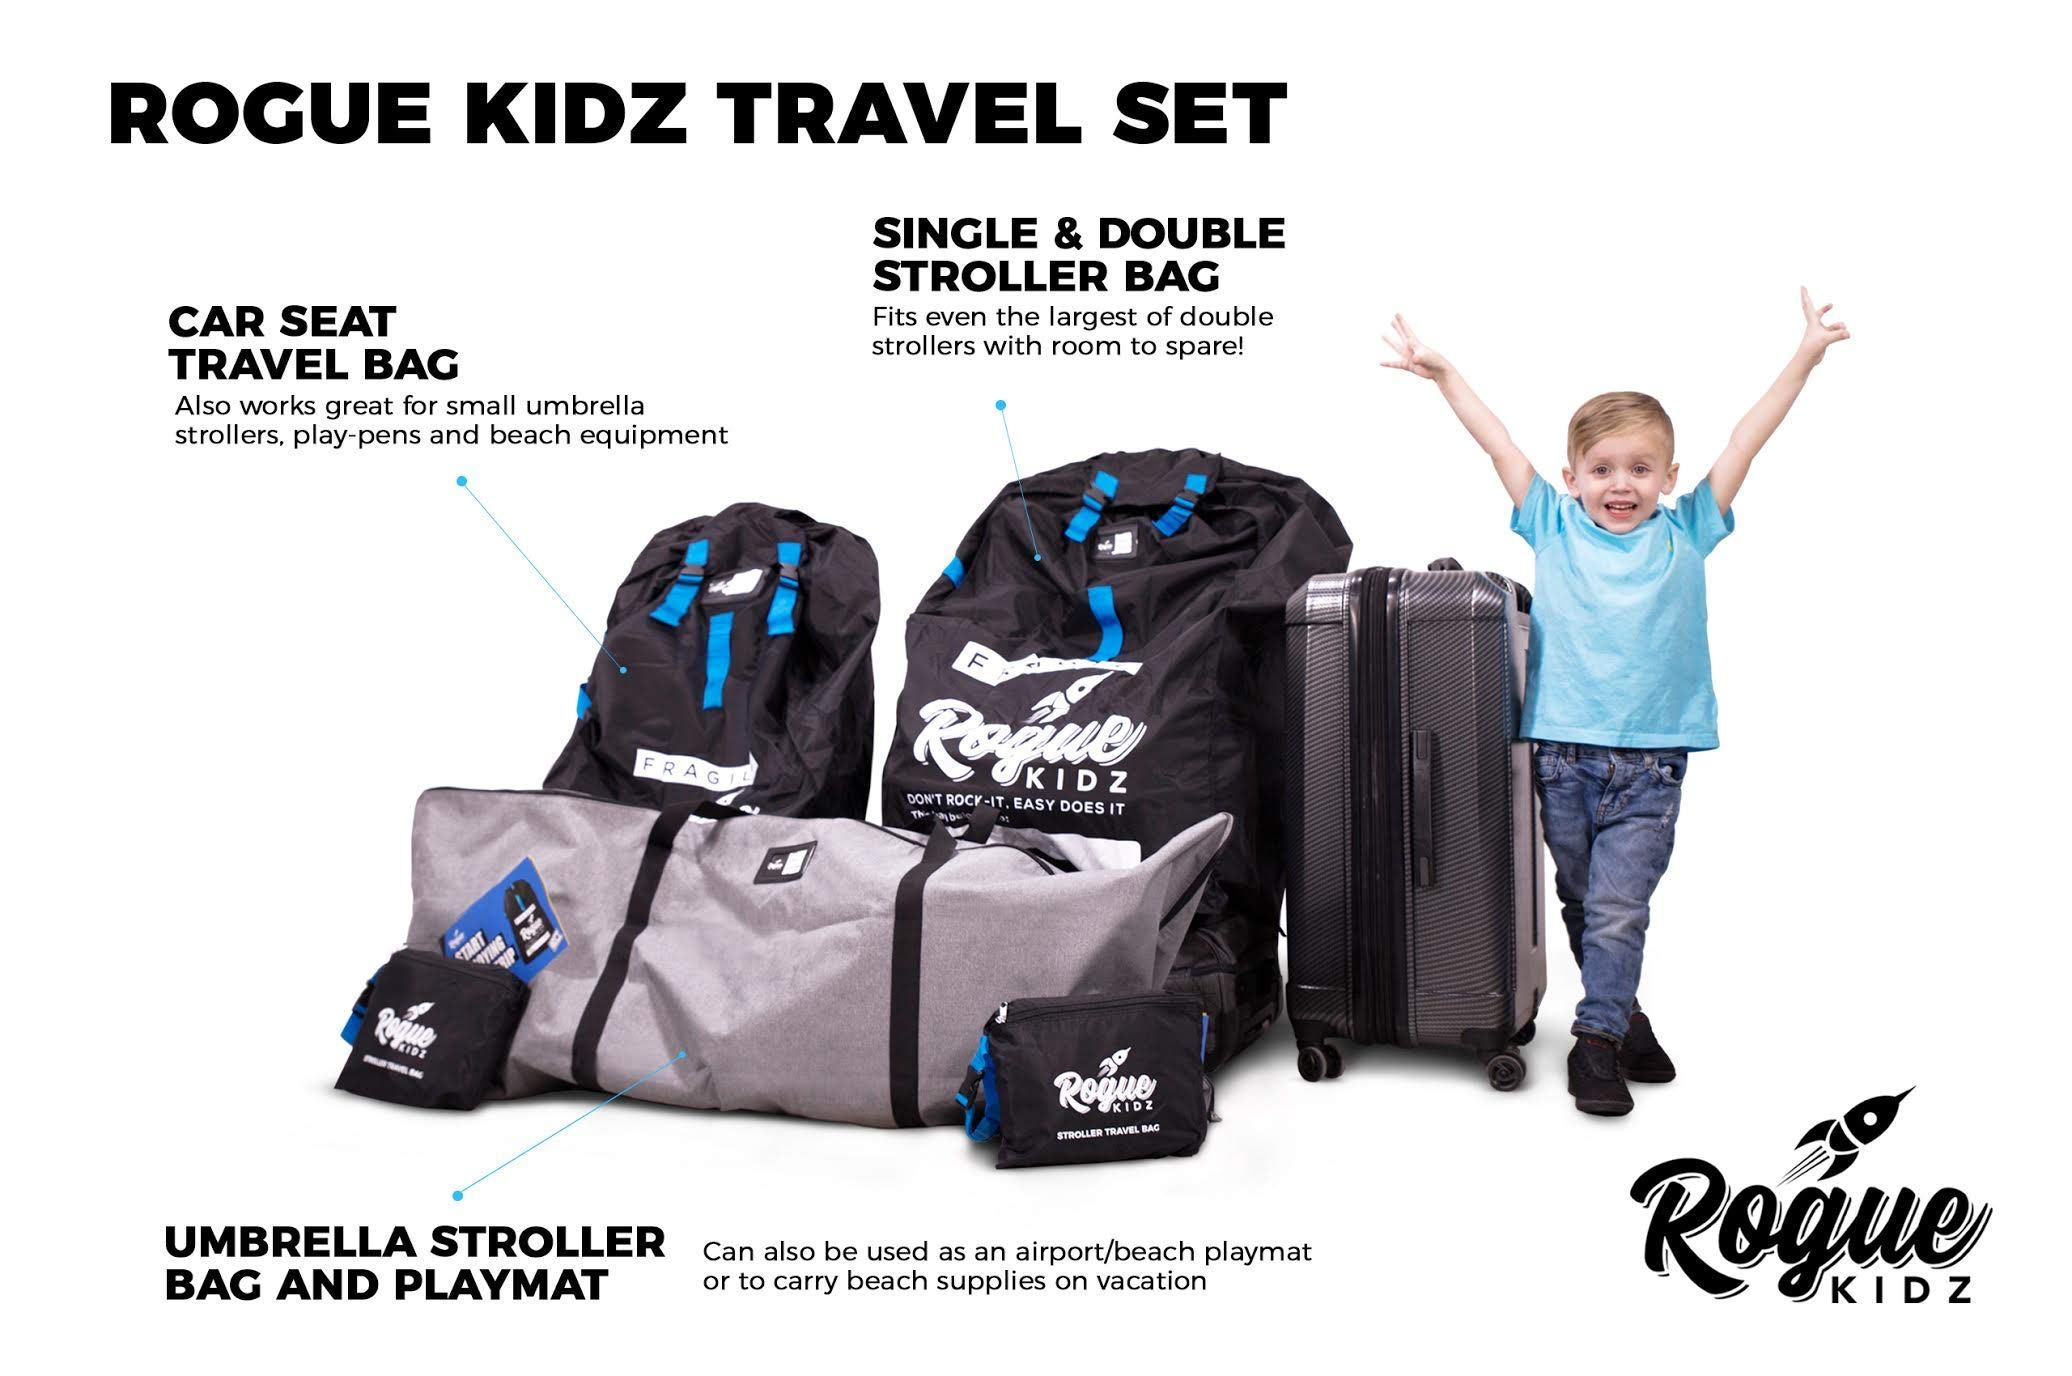 Rogue Kidz Single and Double Stroller Travel Bag For Airplane Gate Check - Durable Universal Large XL Cover With Padded Backpack Straps- Waterproof Heavy Duty Nylon Traveling Protector With Carry Case by Rogue Kidz (Image #9)